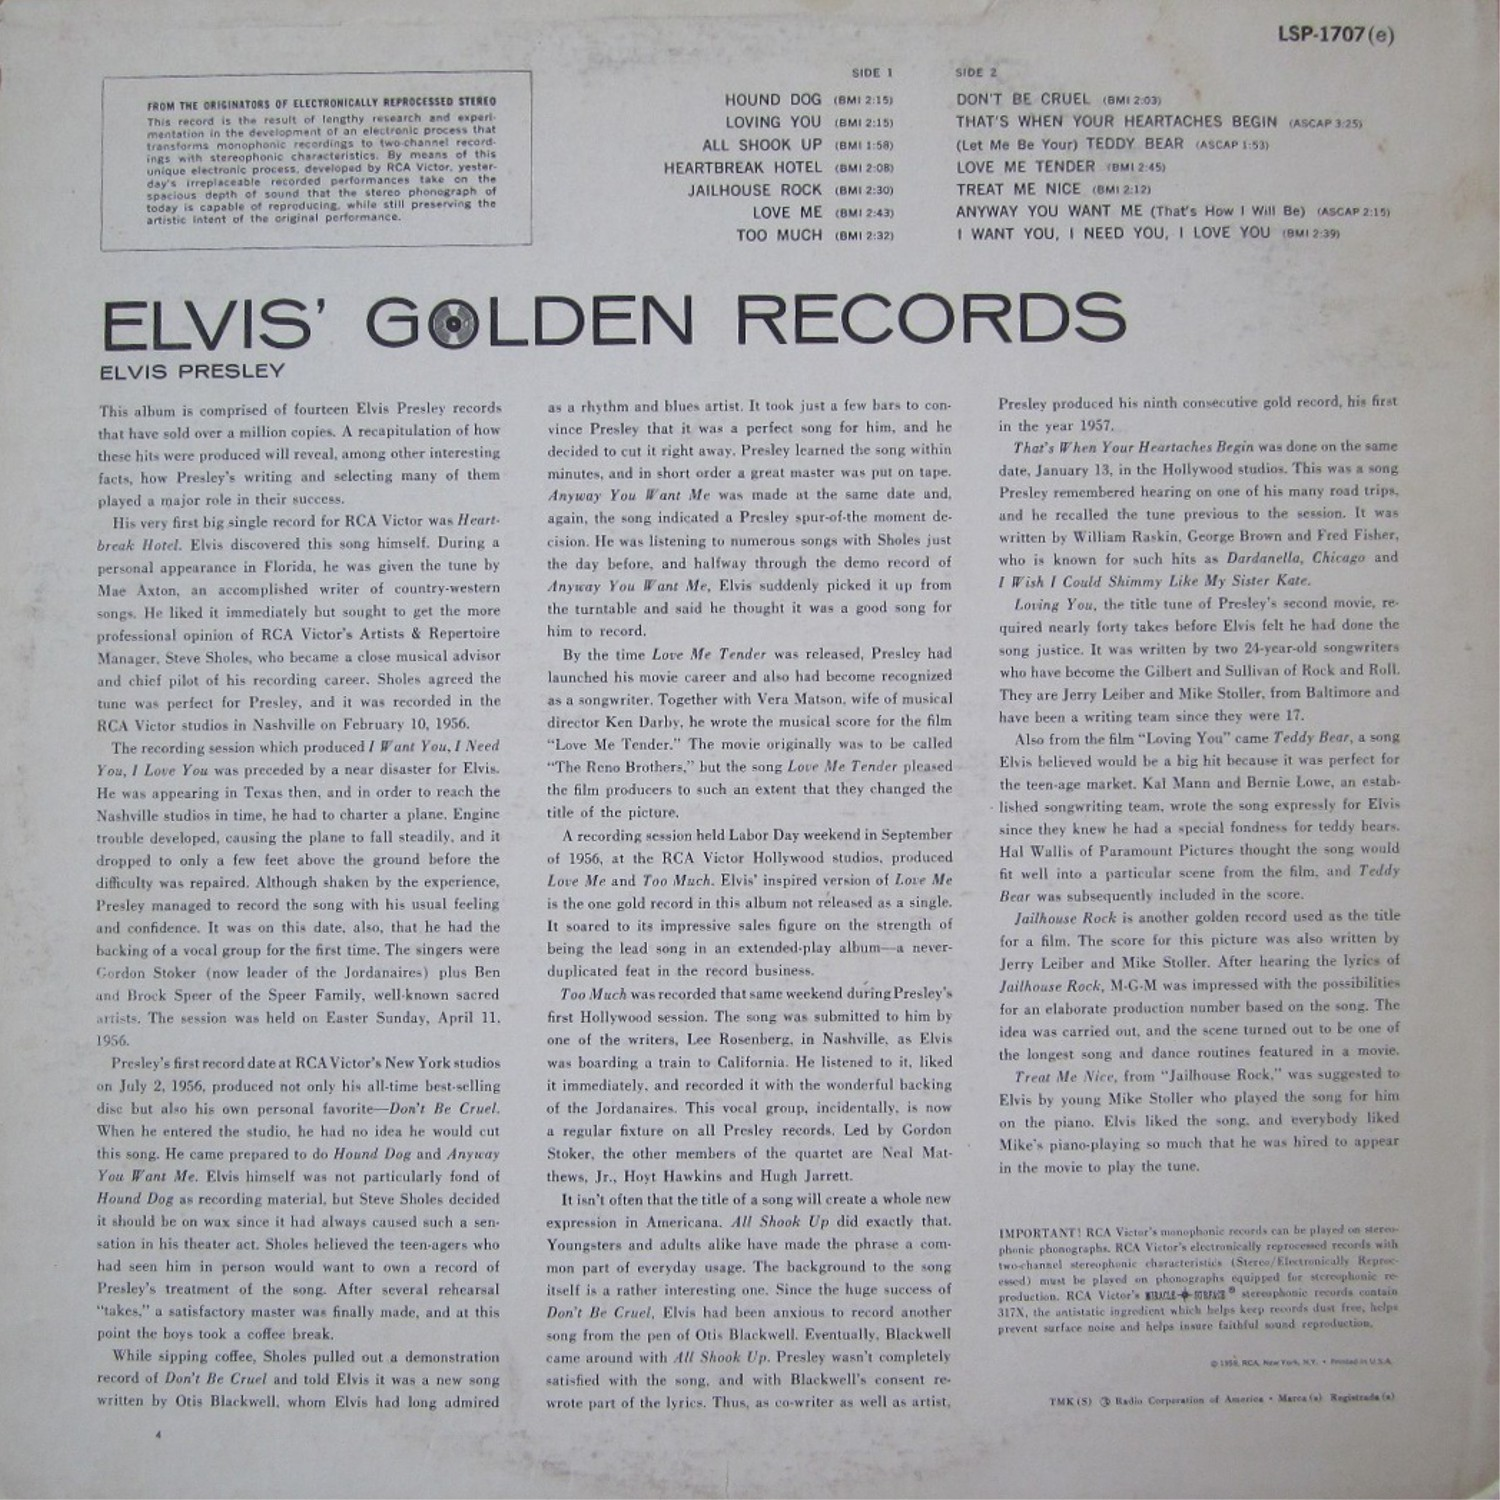 ELVIS' GOLD RECORDS  Lsp1707bk5zad